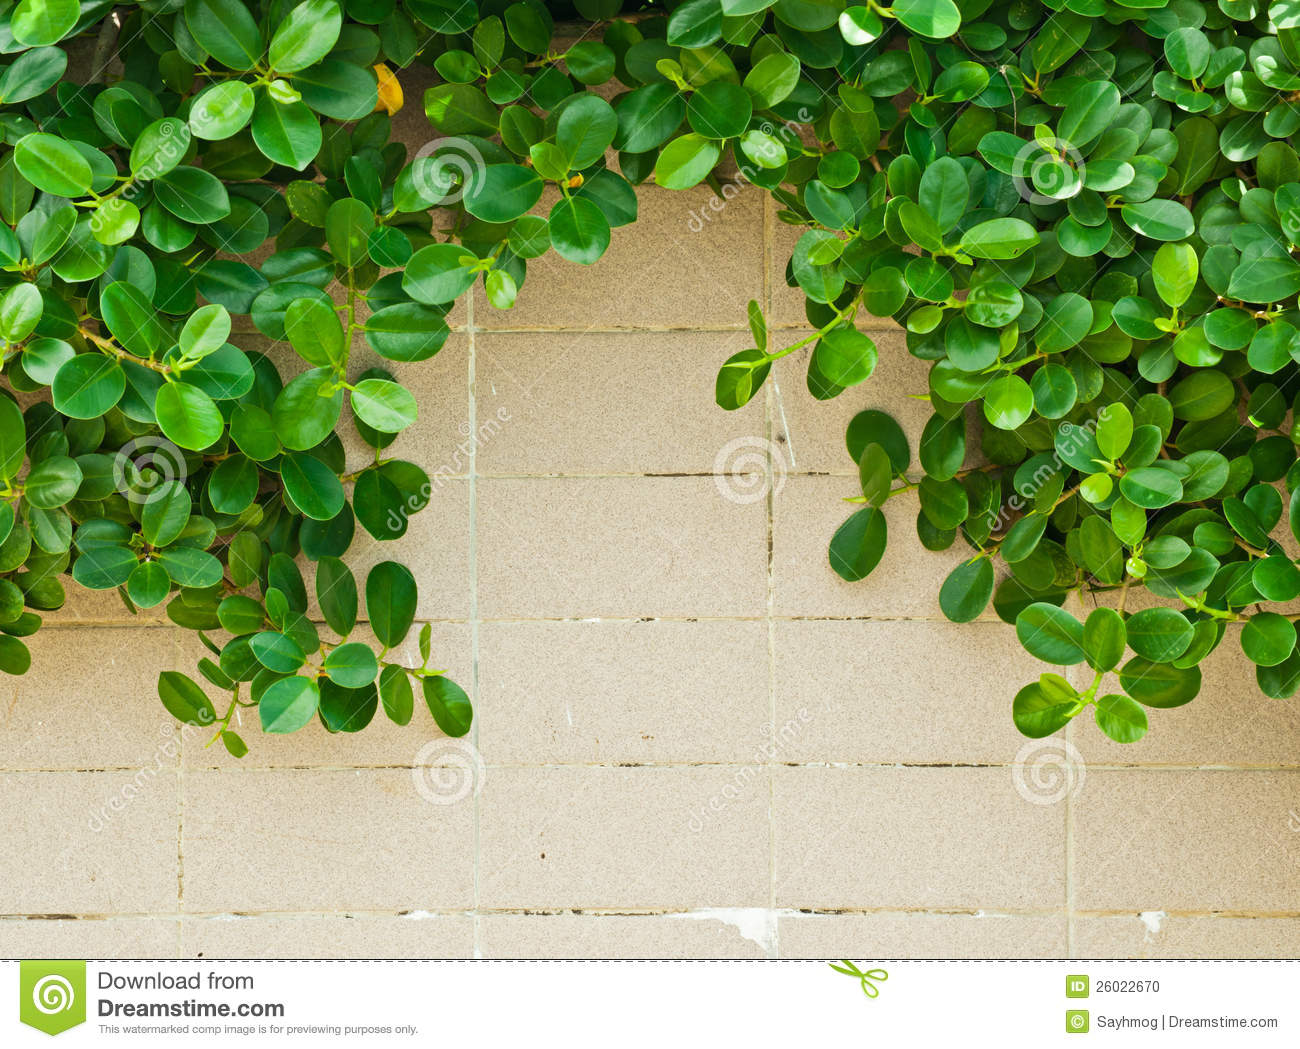 Download Green leaves on tile wall stock photo. Image of organic - 26022670